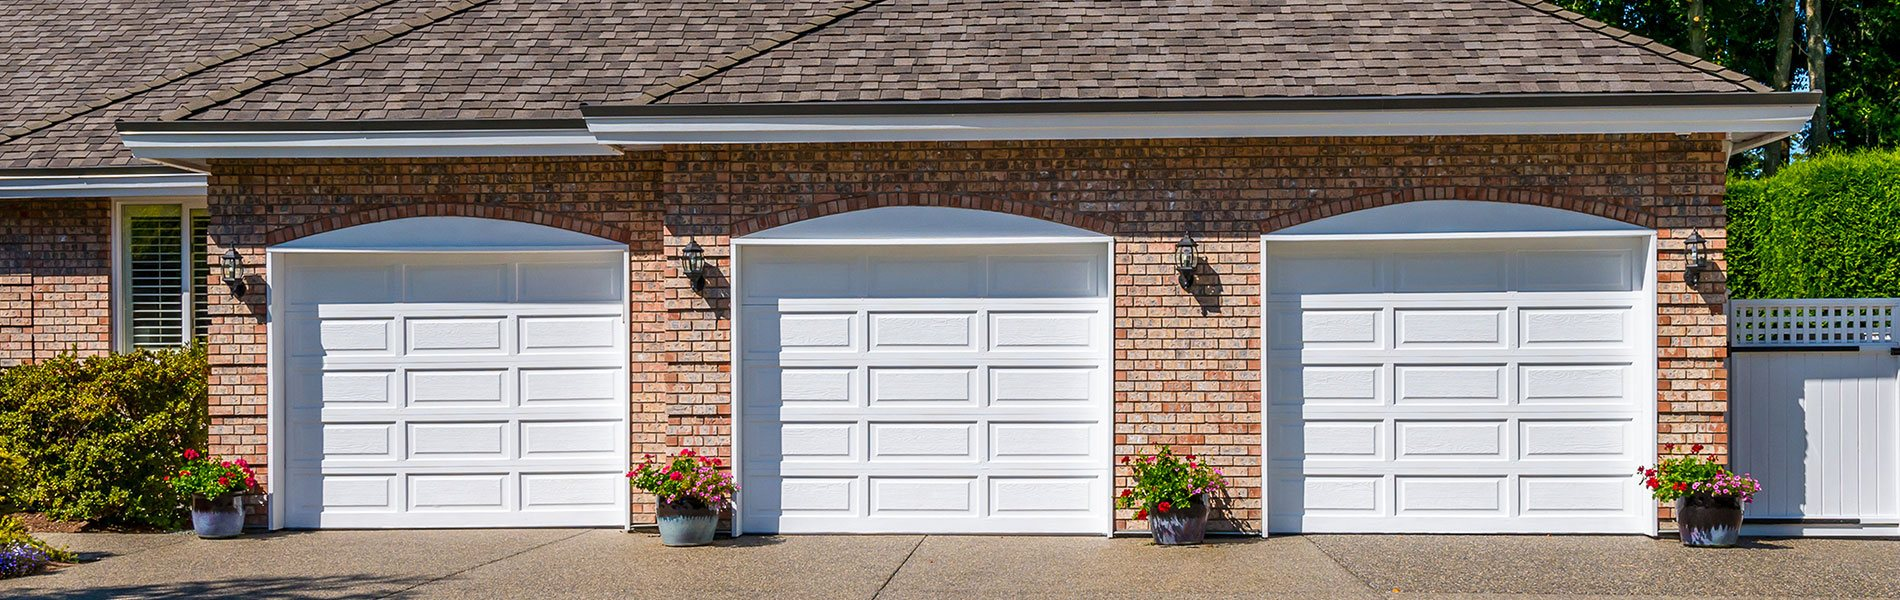 Galaxy Garage Door Repair Service, Murfreesboro, TN 615-546-0262